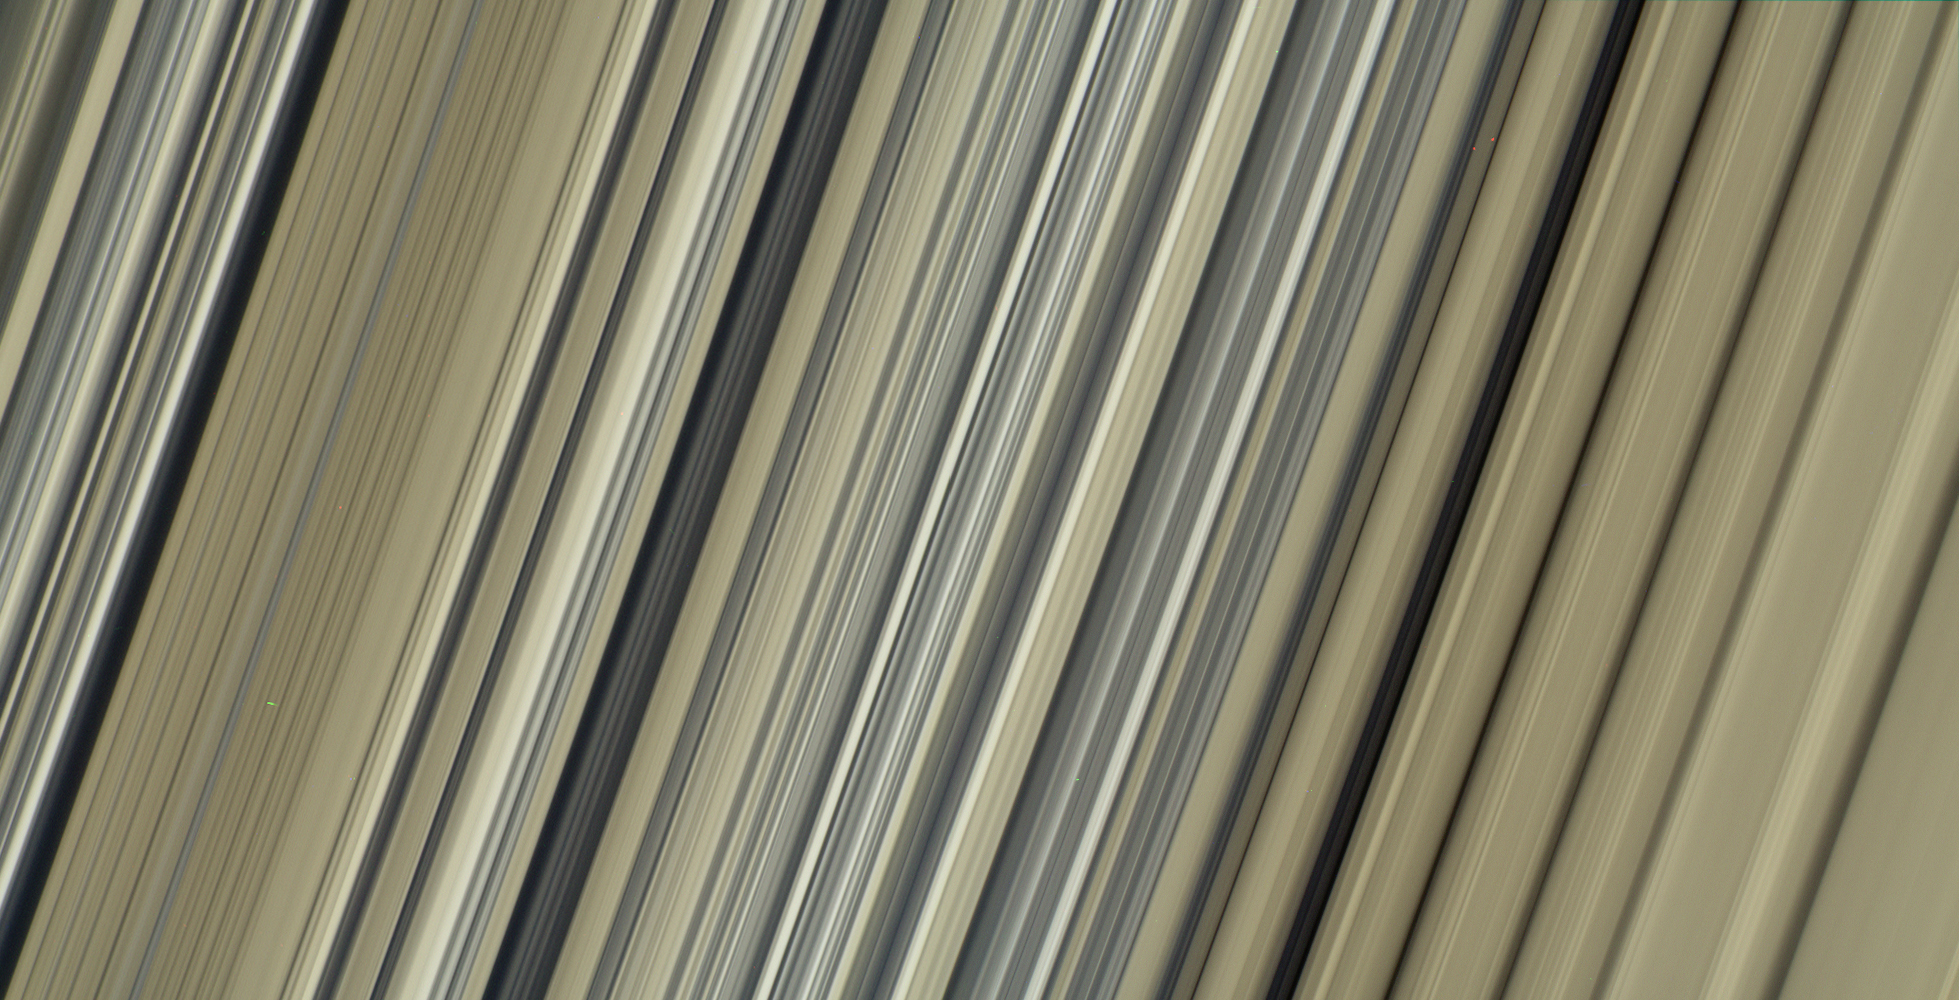 Up-close image of Saturn's rings from Cassini